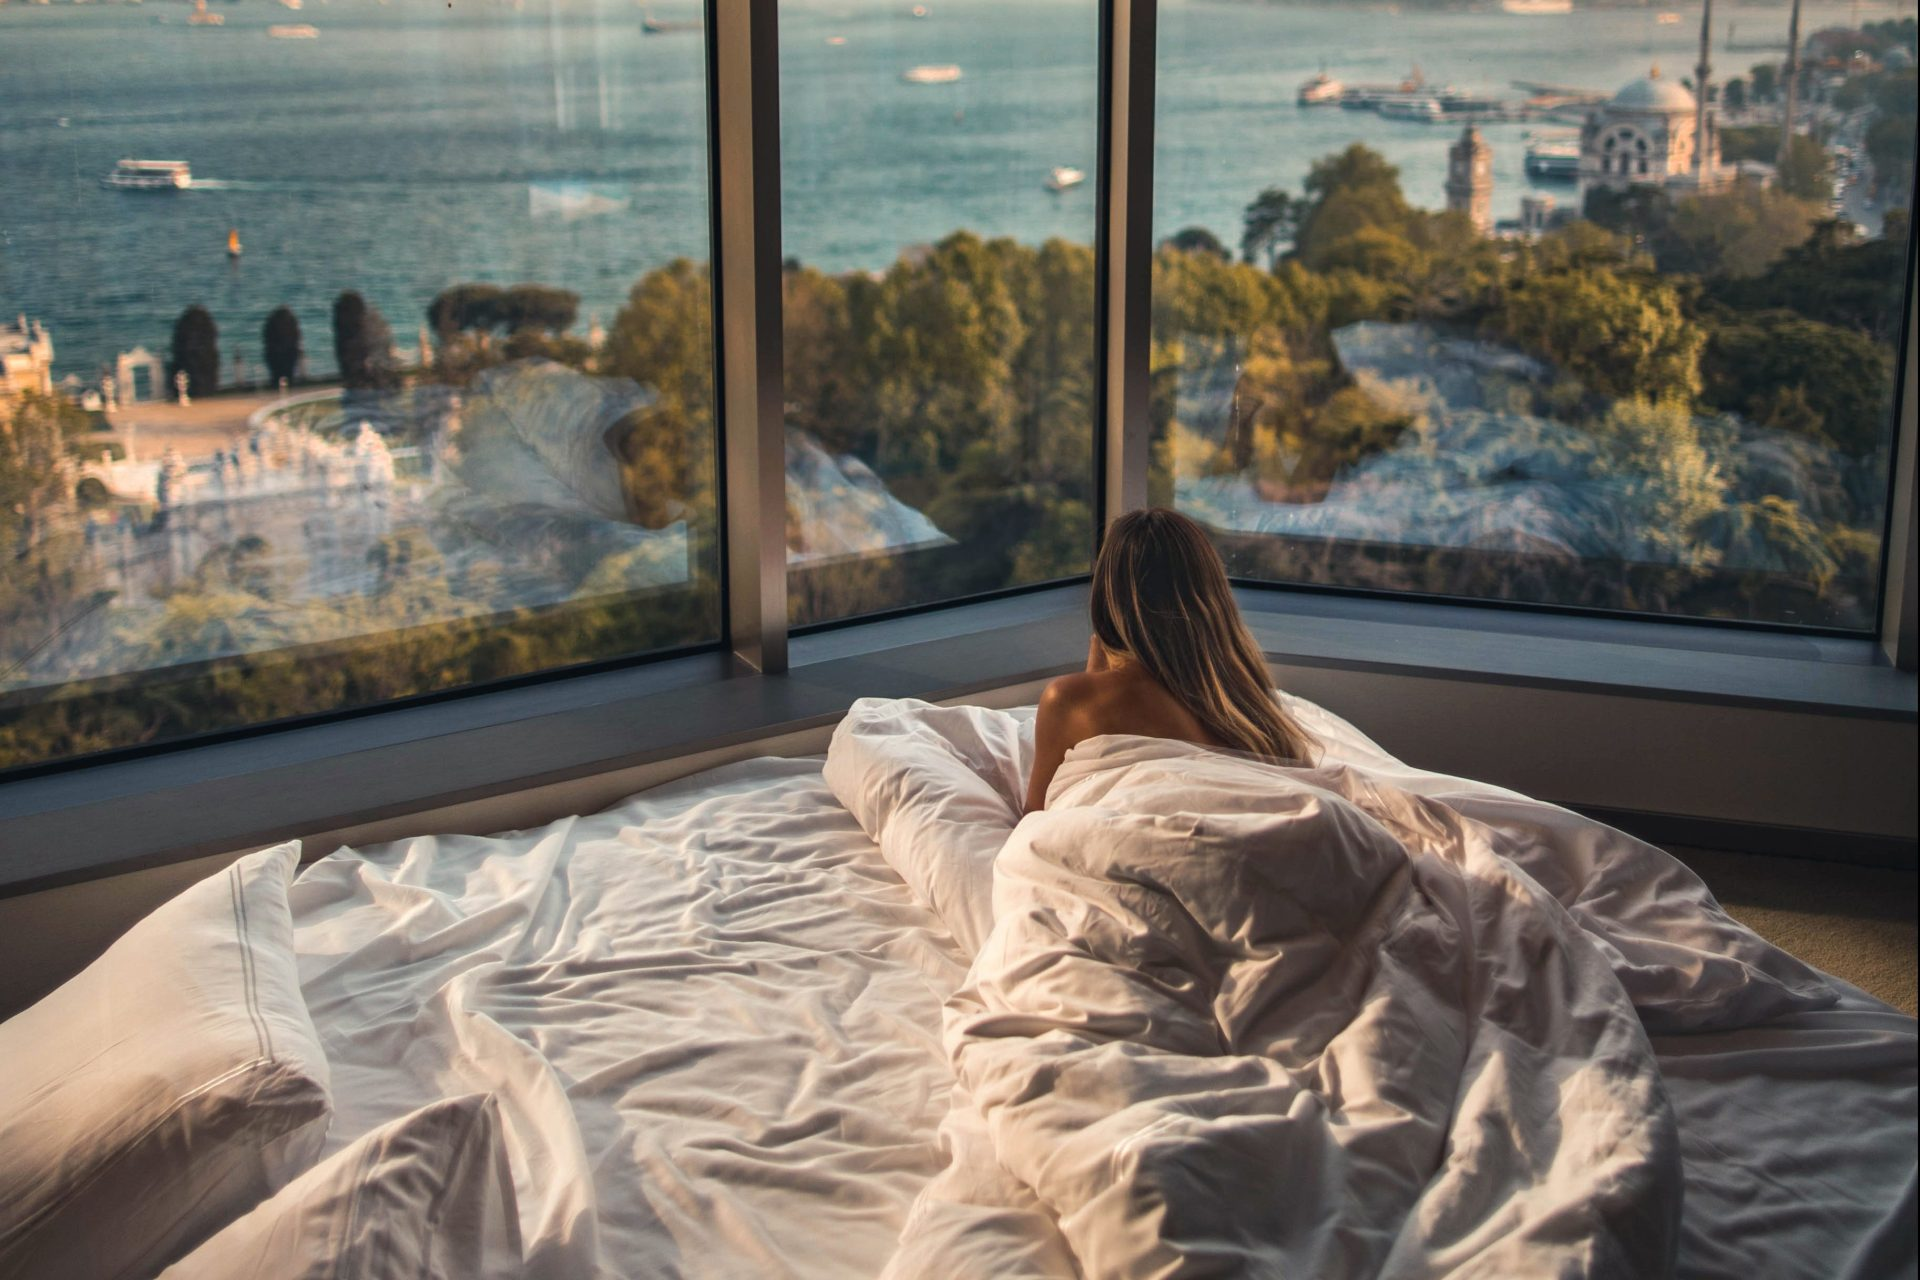 50 Reasons To Get Out Of Bed Today (Even When It's The Last Thing You Want To Do)